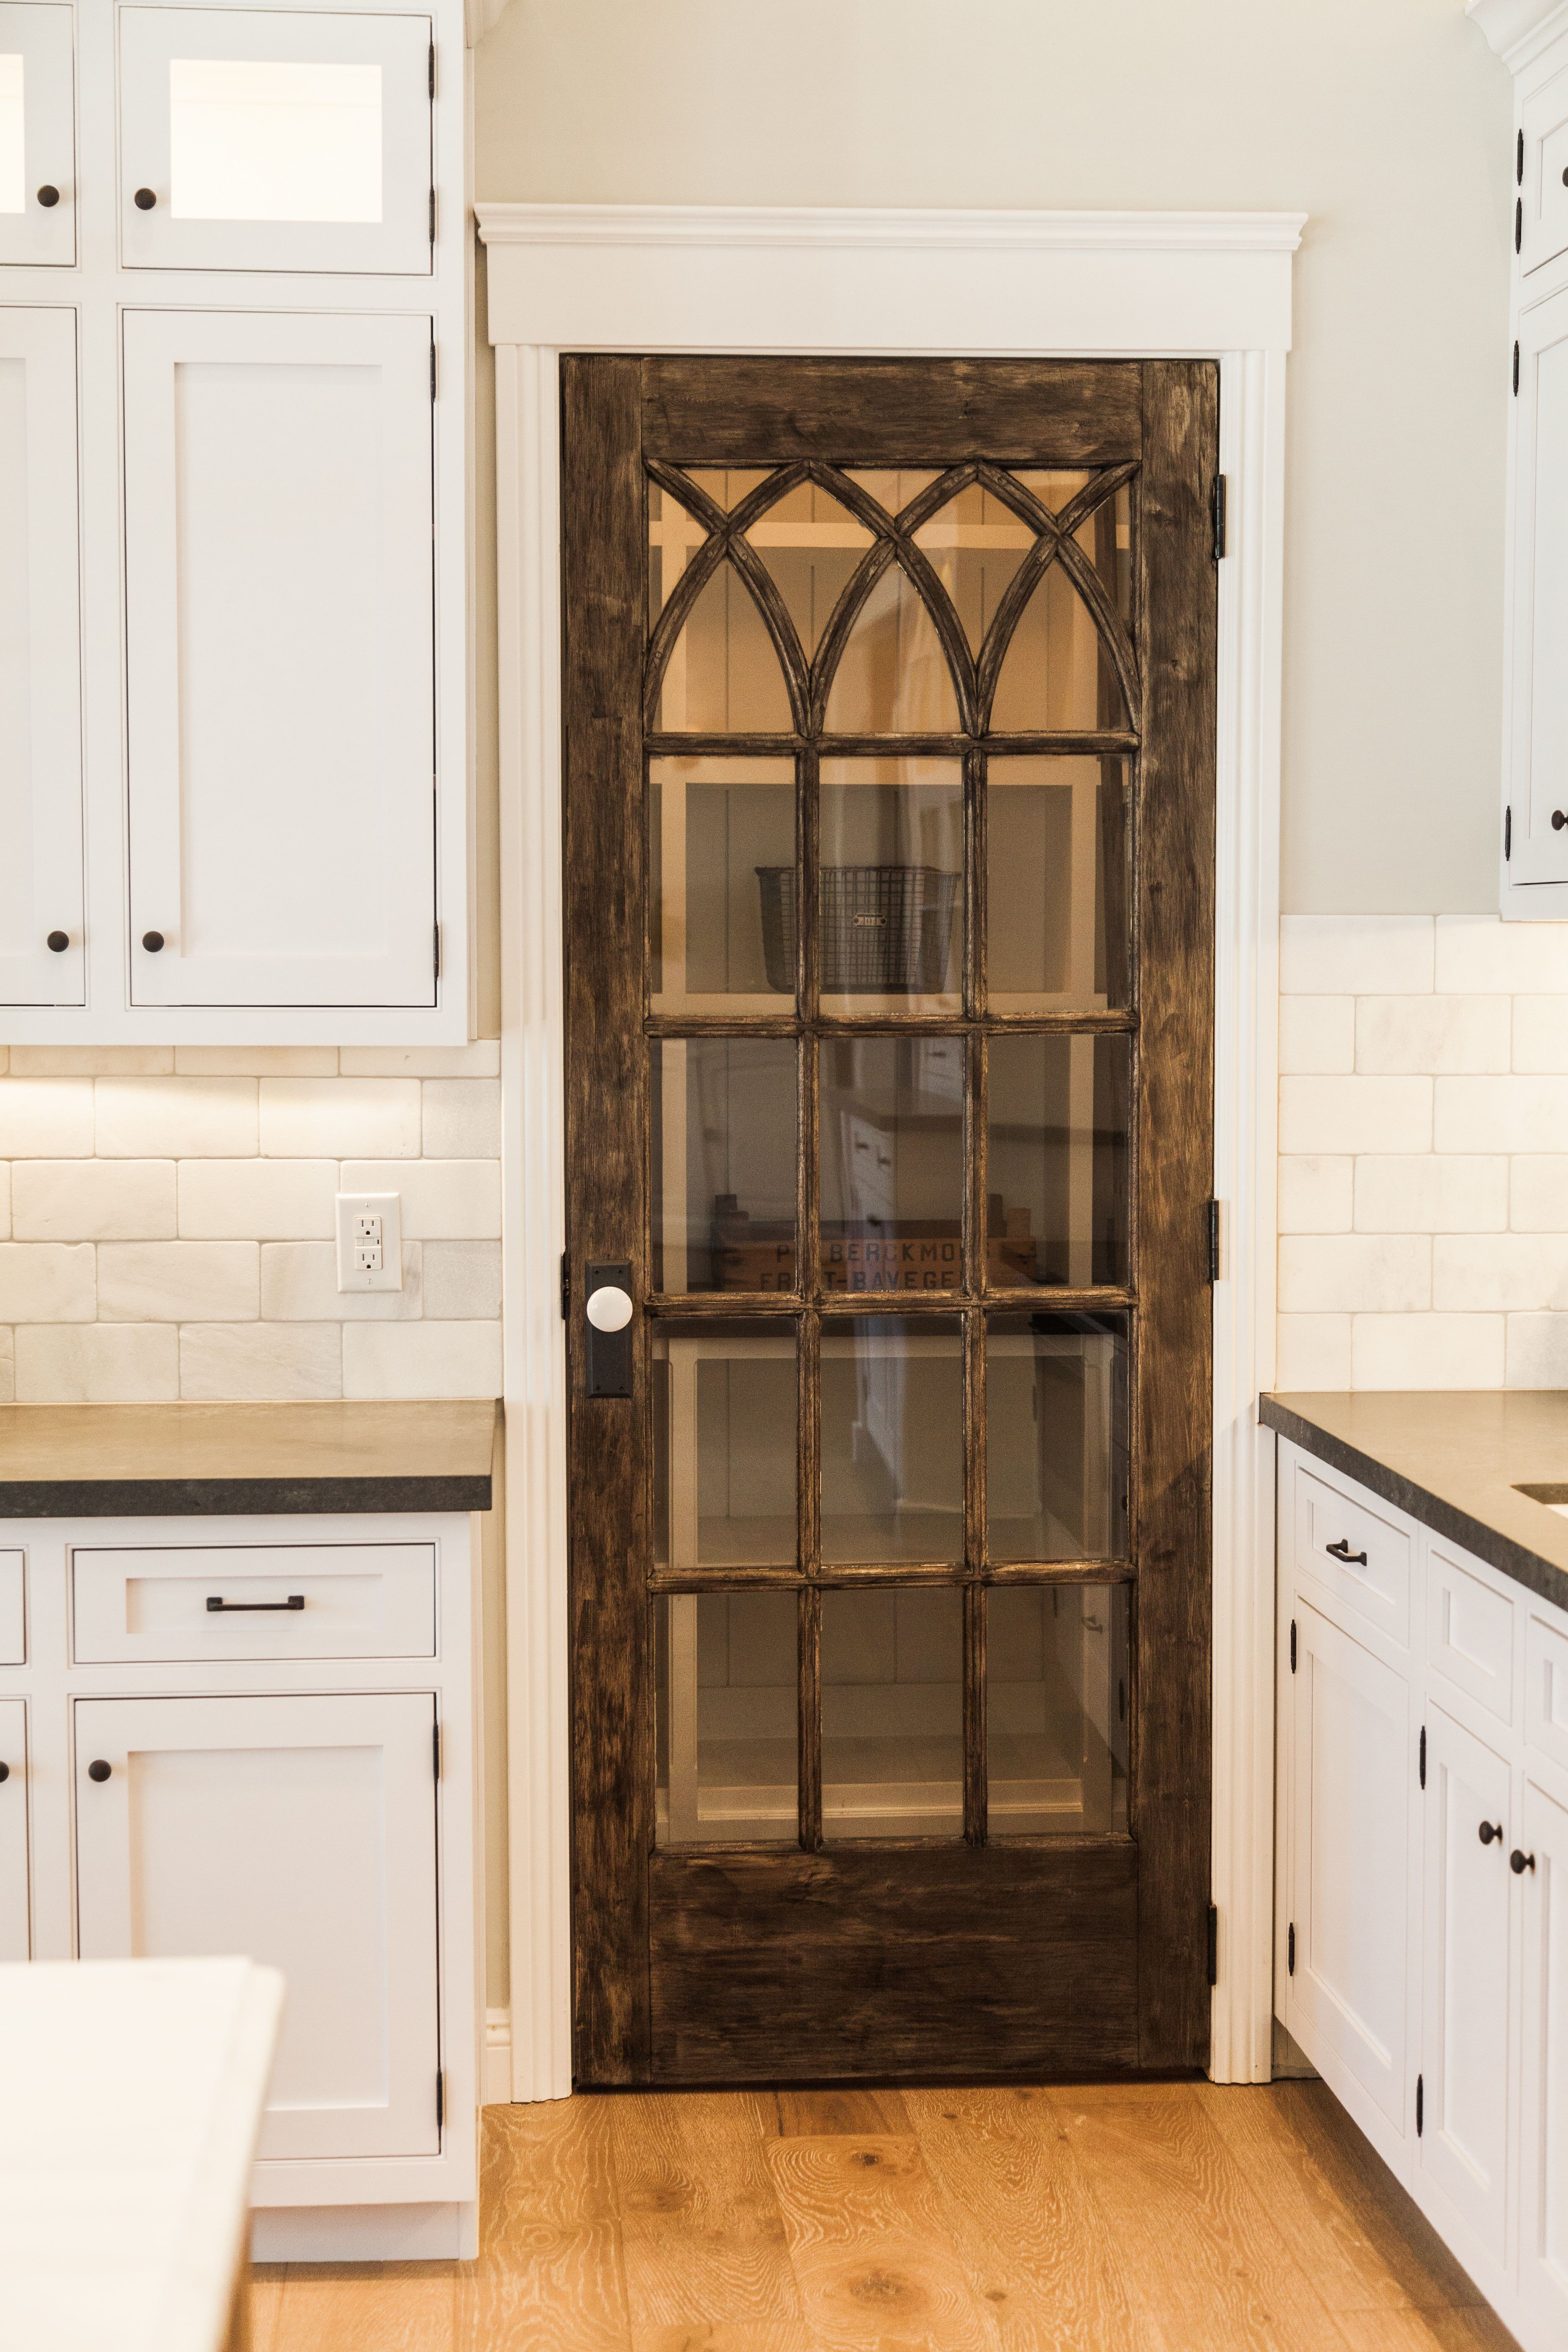 Pin by Pam Freeman on Home | Pinterest | Doors, Pantry and ...